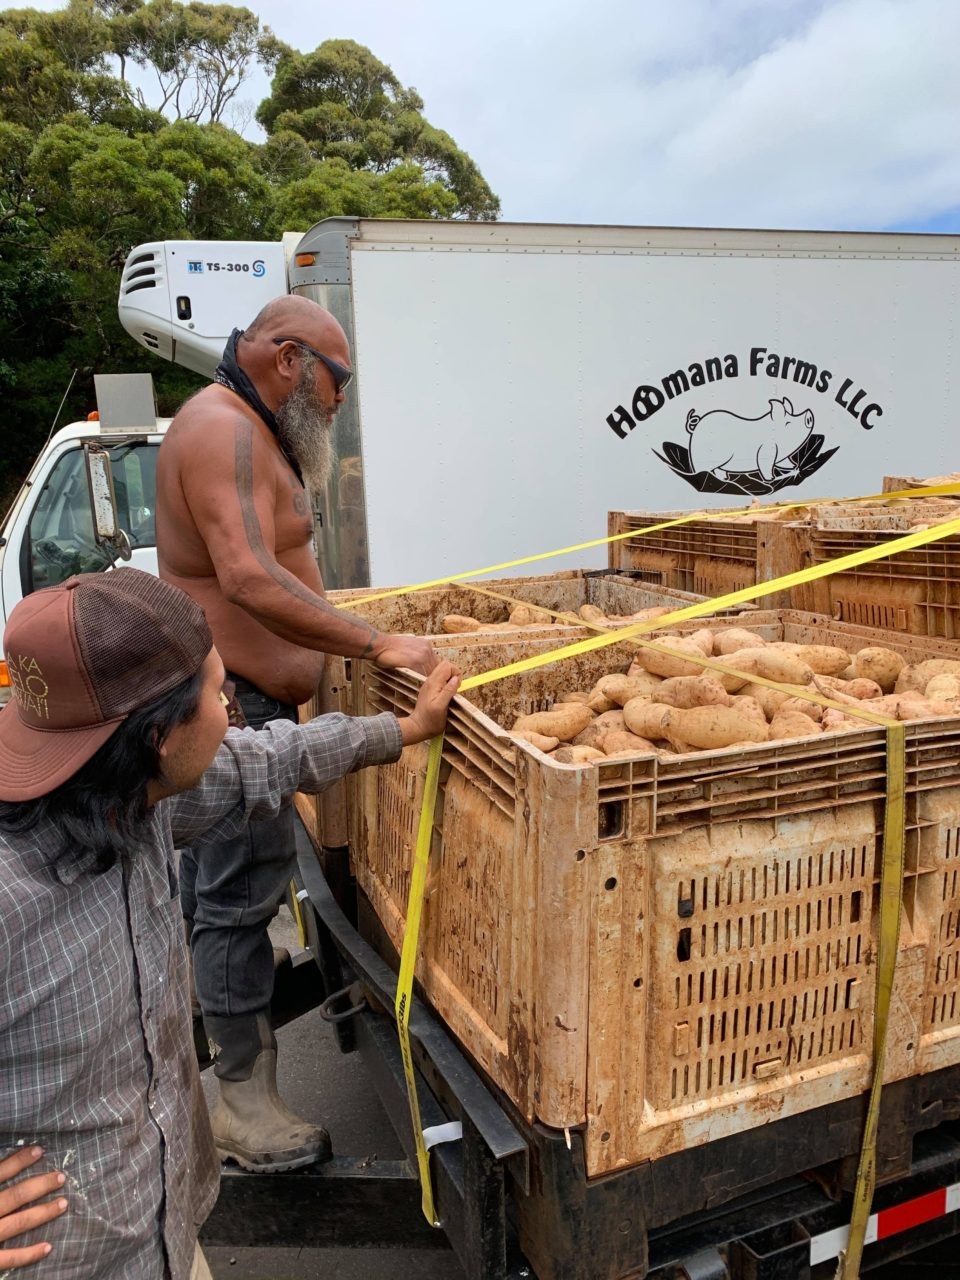 Maui Best Incorporation and Ho'omana Farms LLC sponsored the Ho'omana project where twelve tons of sweet potato was distributed to the public. Below is a link of photos and videos taken by Senator J. Kalani English throughout the distribu